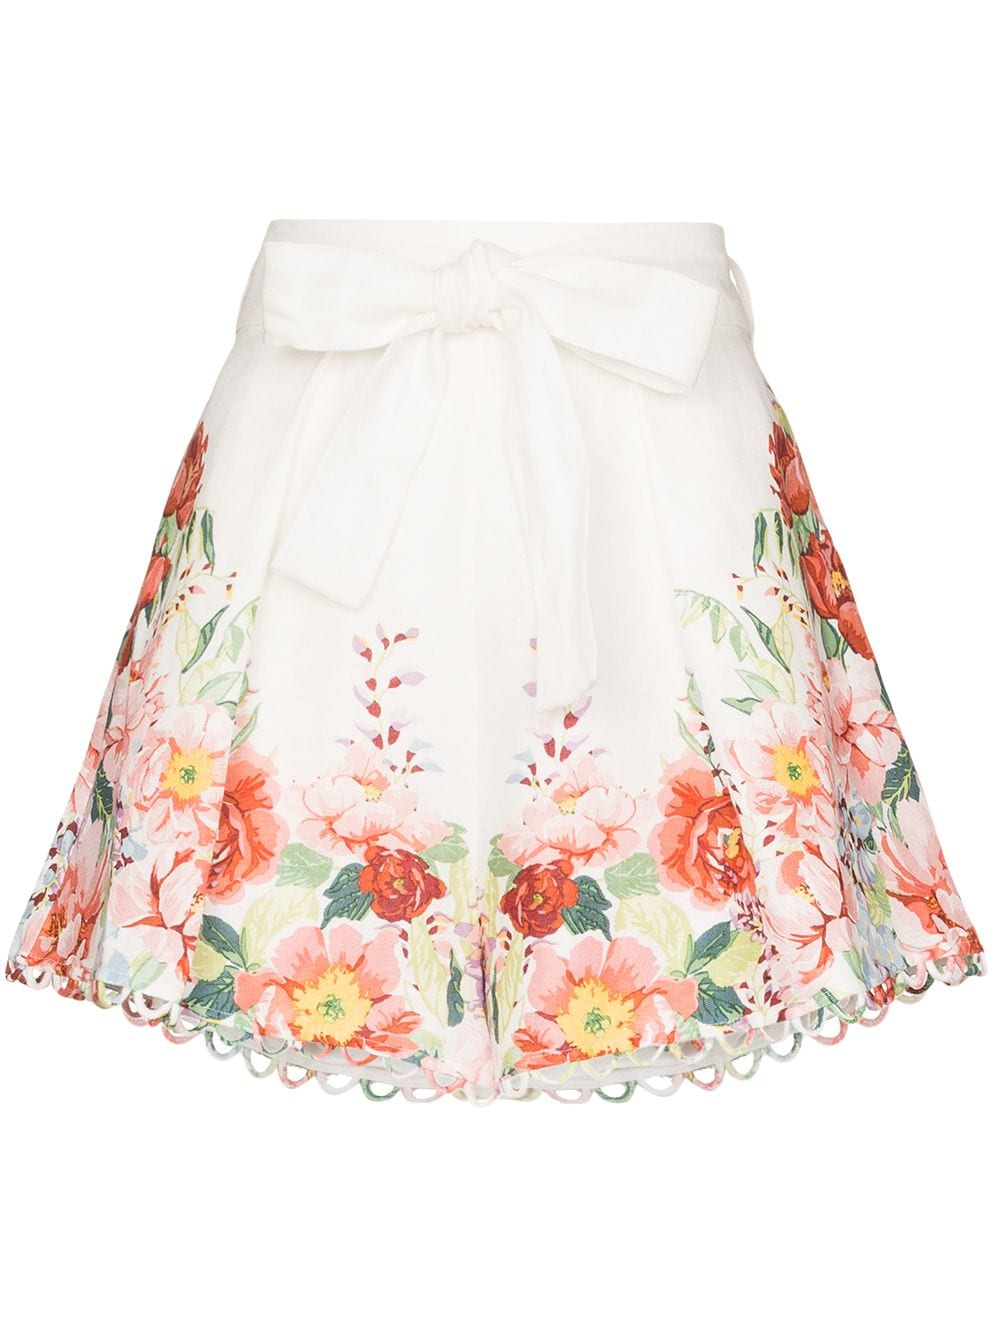 ZIMMERMANN ZIMMERMANN | Shorts | 8206ABTDIVOFL